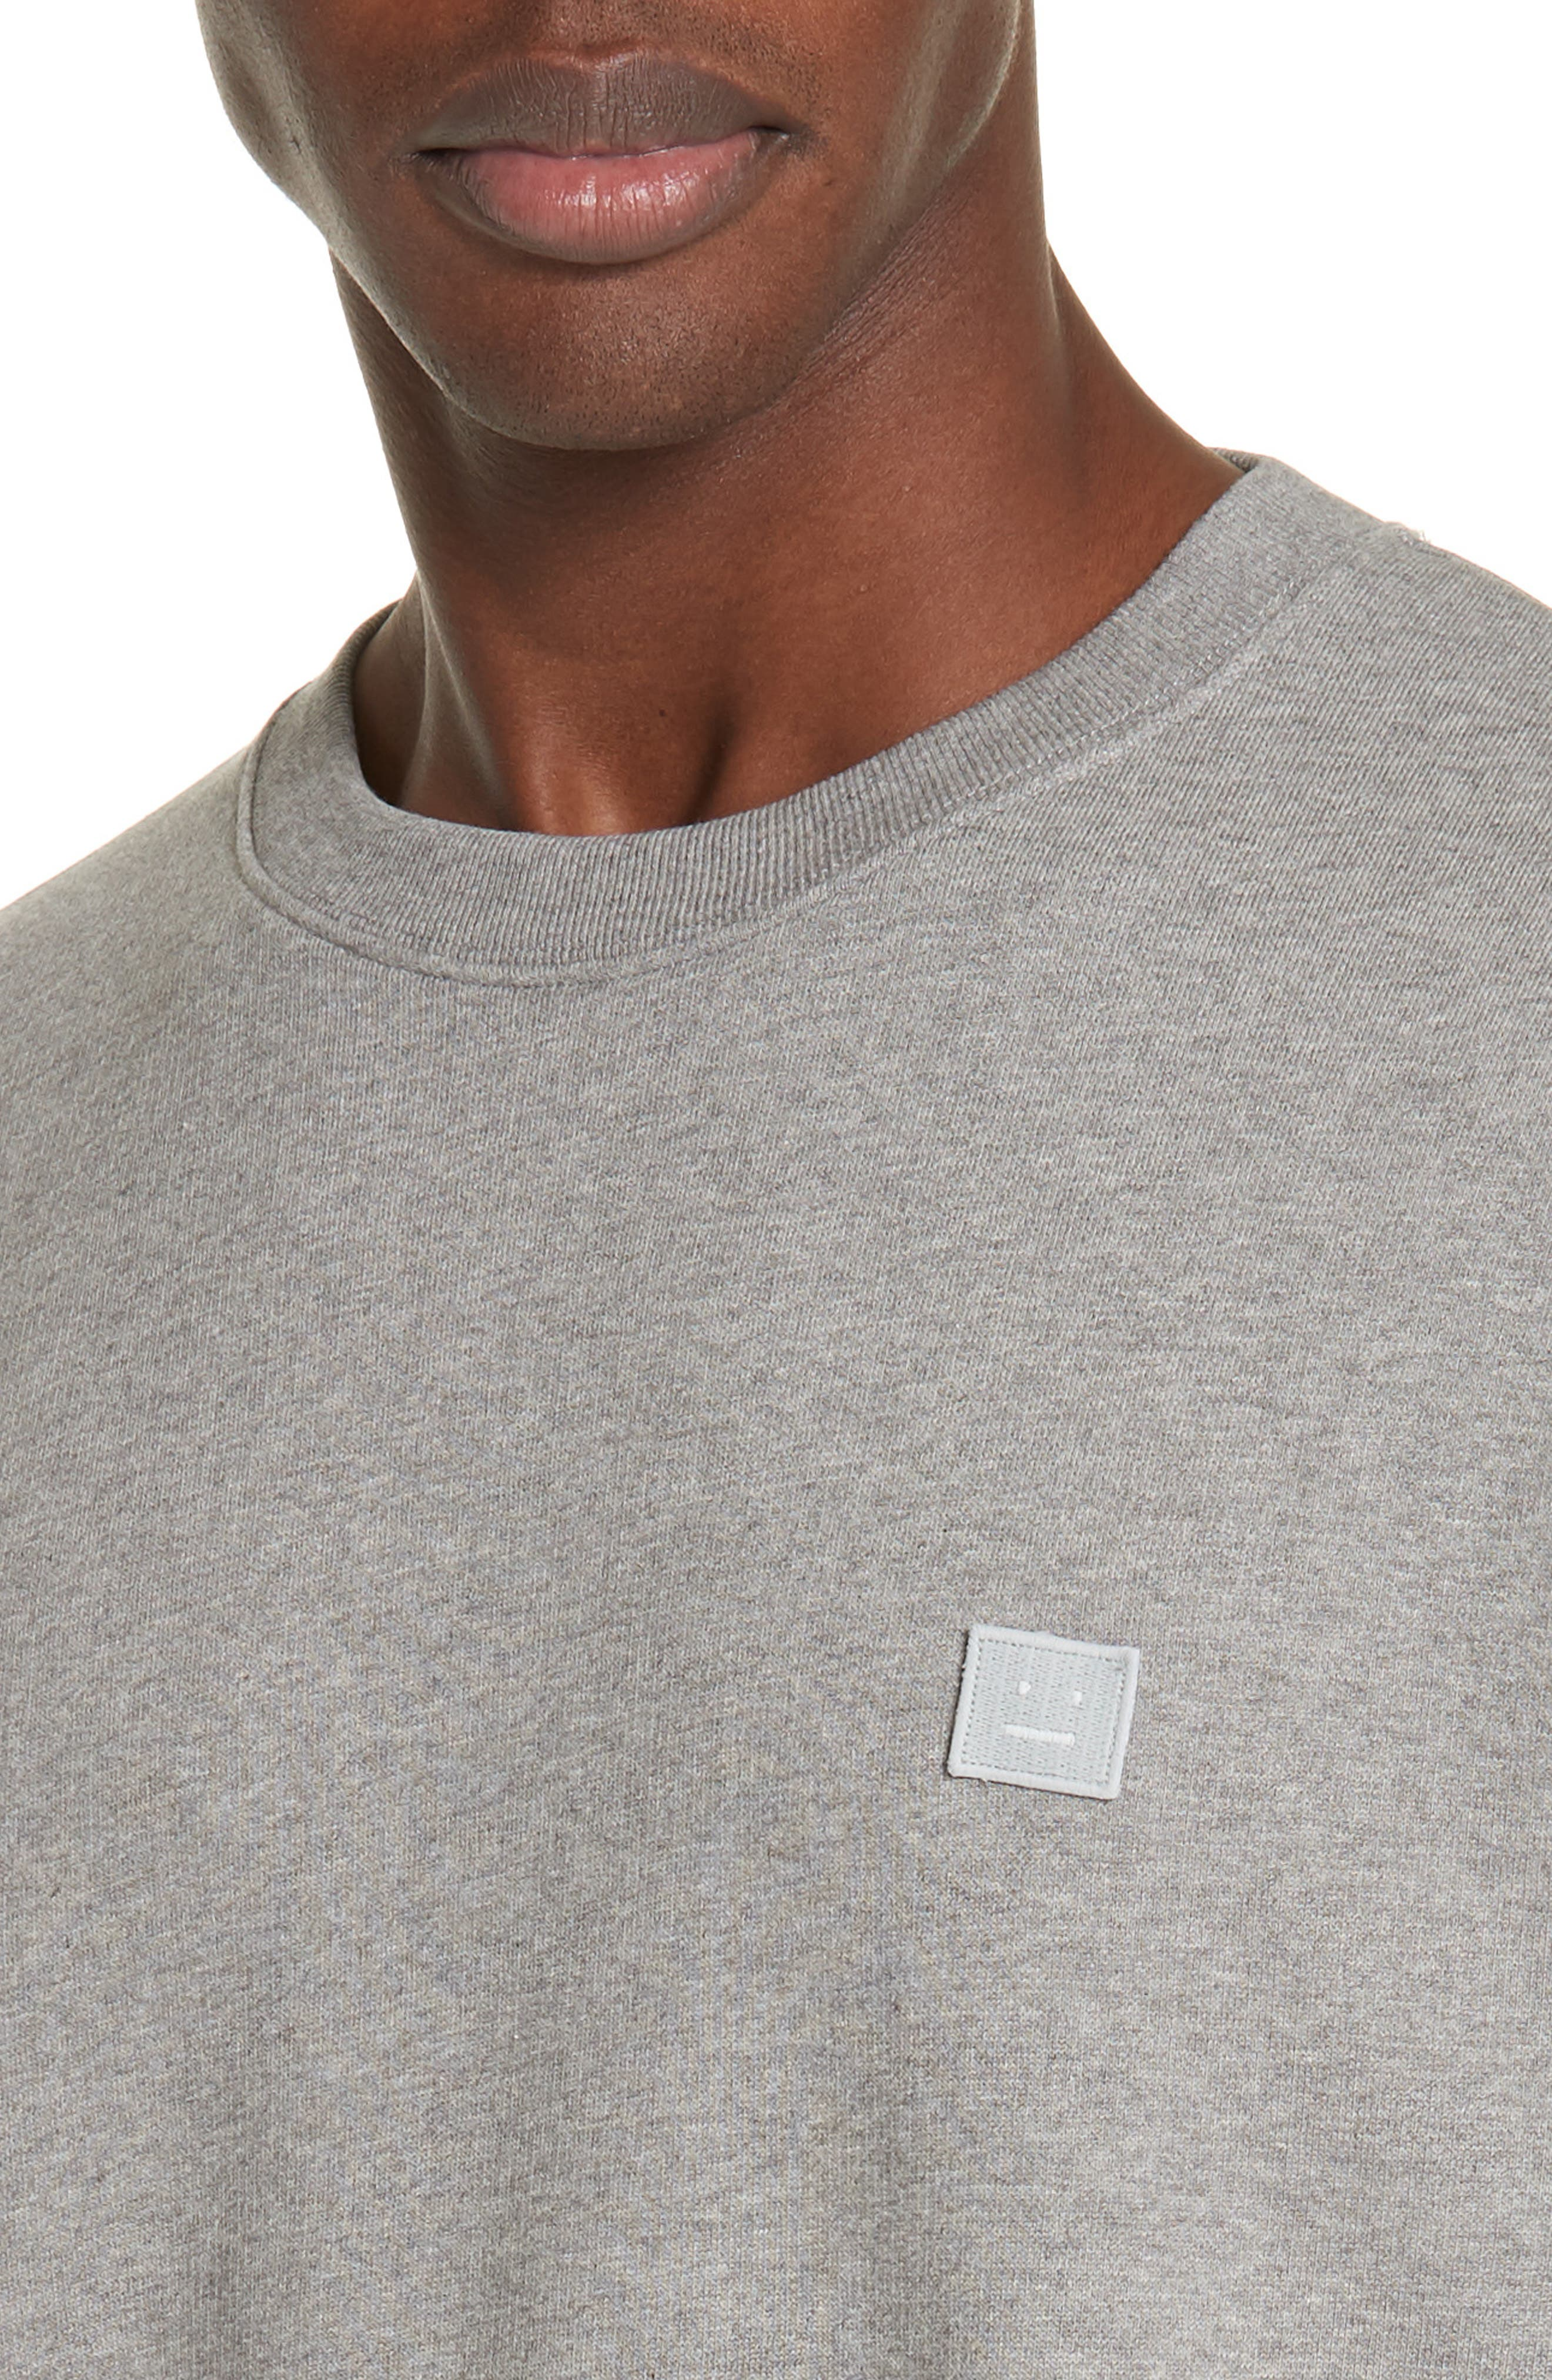 ACNE STUDIOS,                             Forba Face Sweatshirt,                             Alternate thumbnail 4, color,                             LIGHT GREY MELANGE